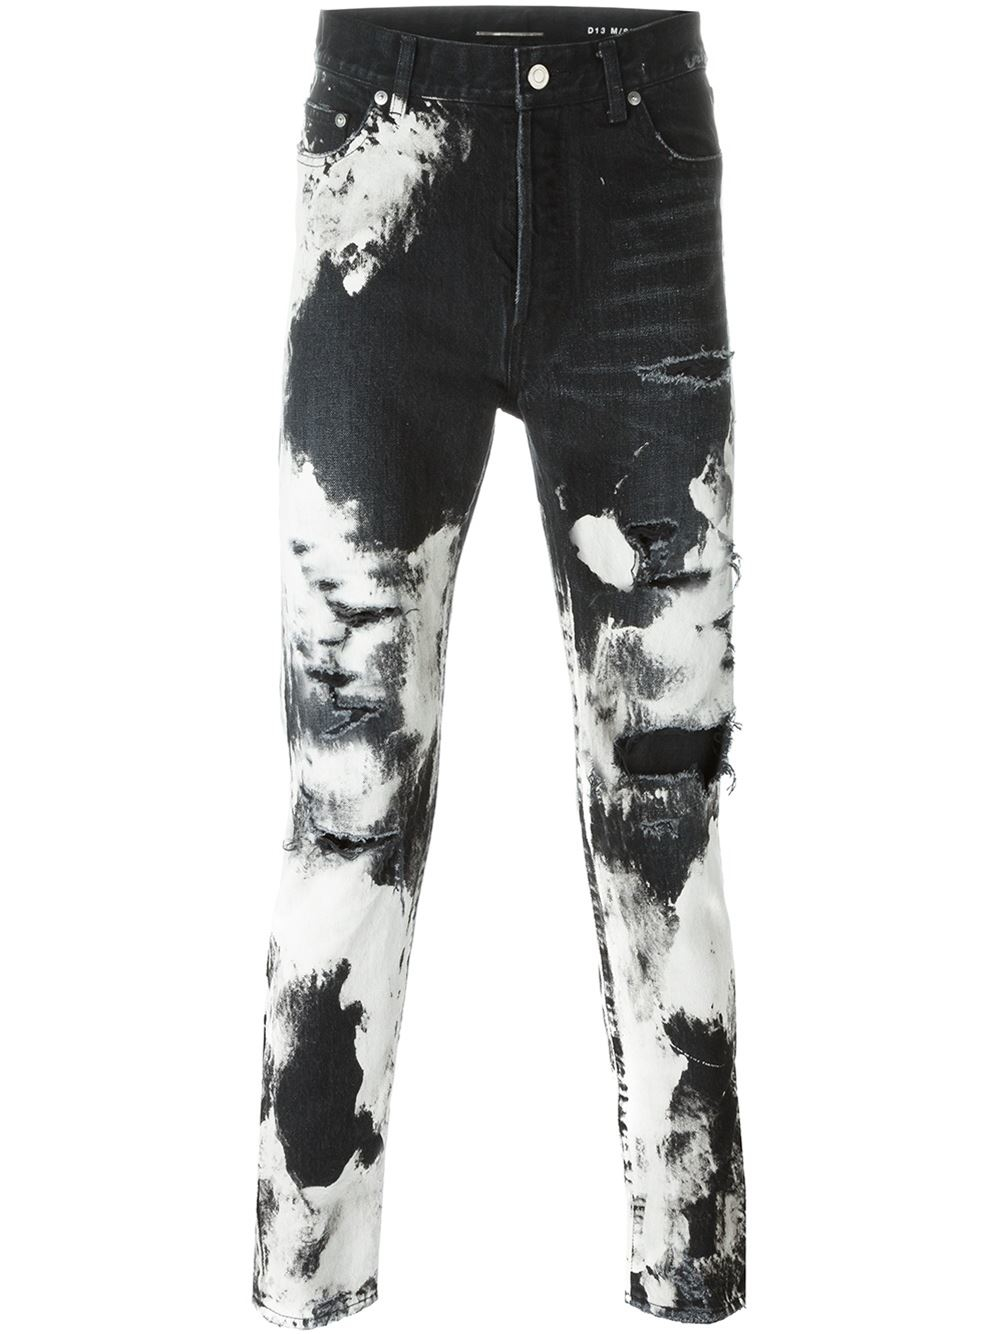 35335c98858 Saint Laurent Tie Dye Jeans in Black for Men - Lyst